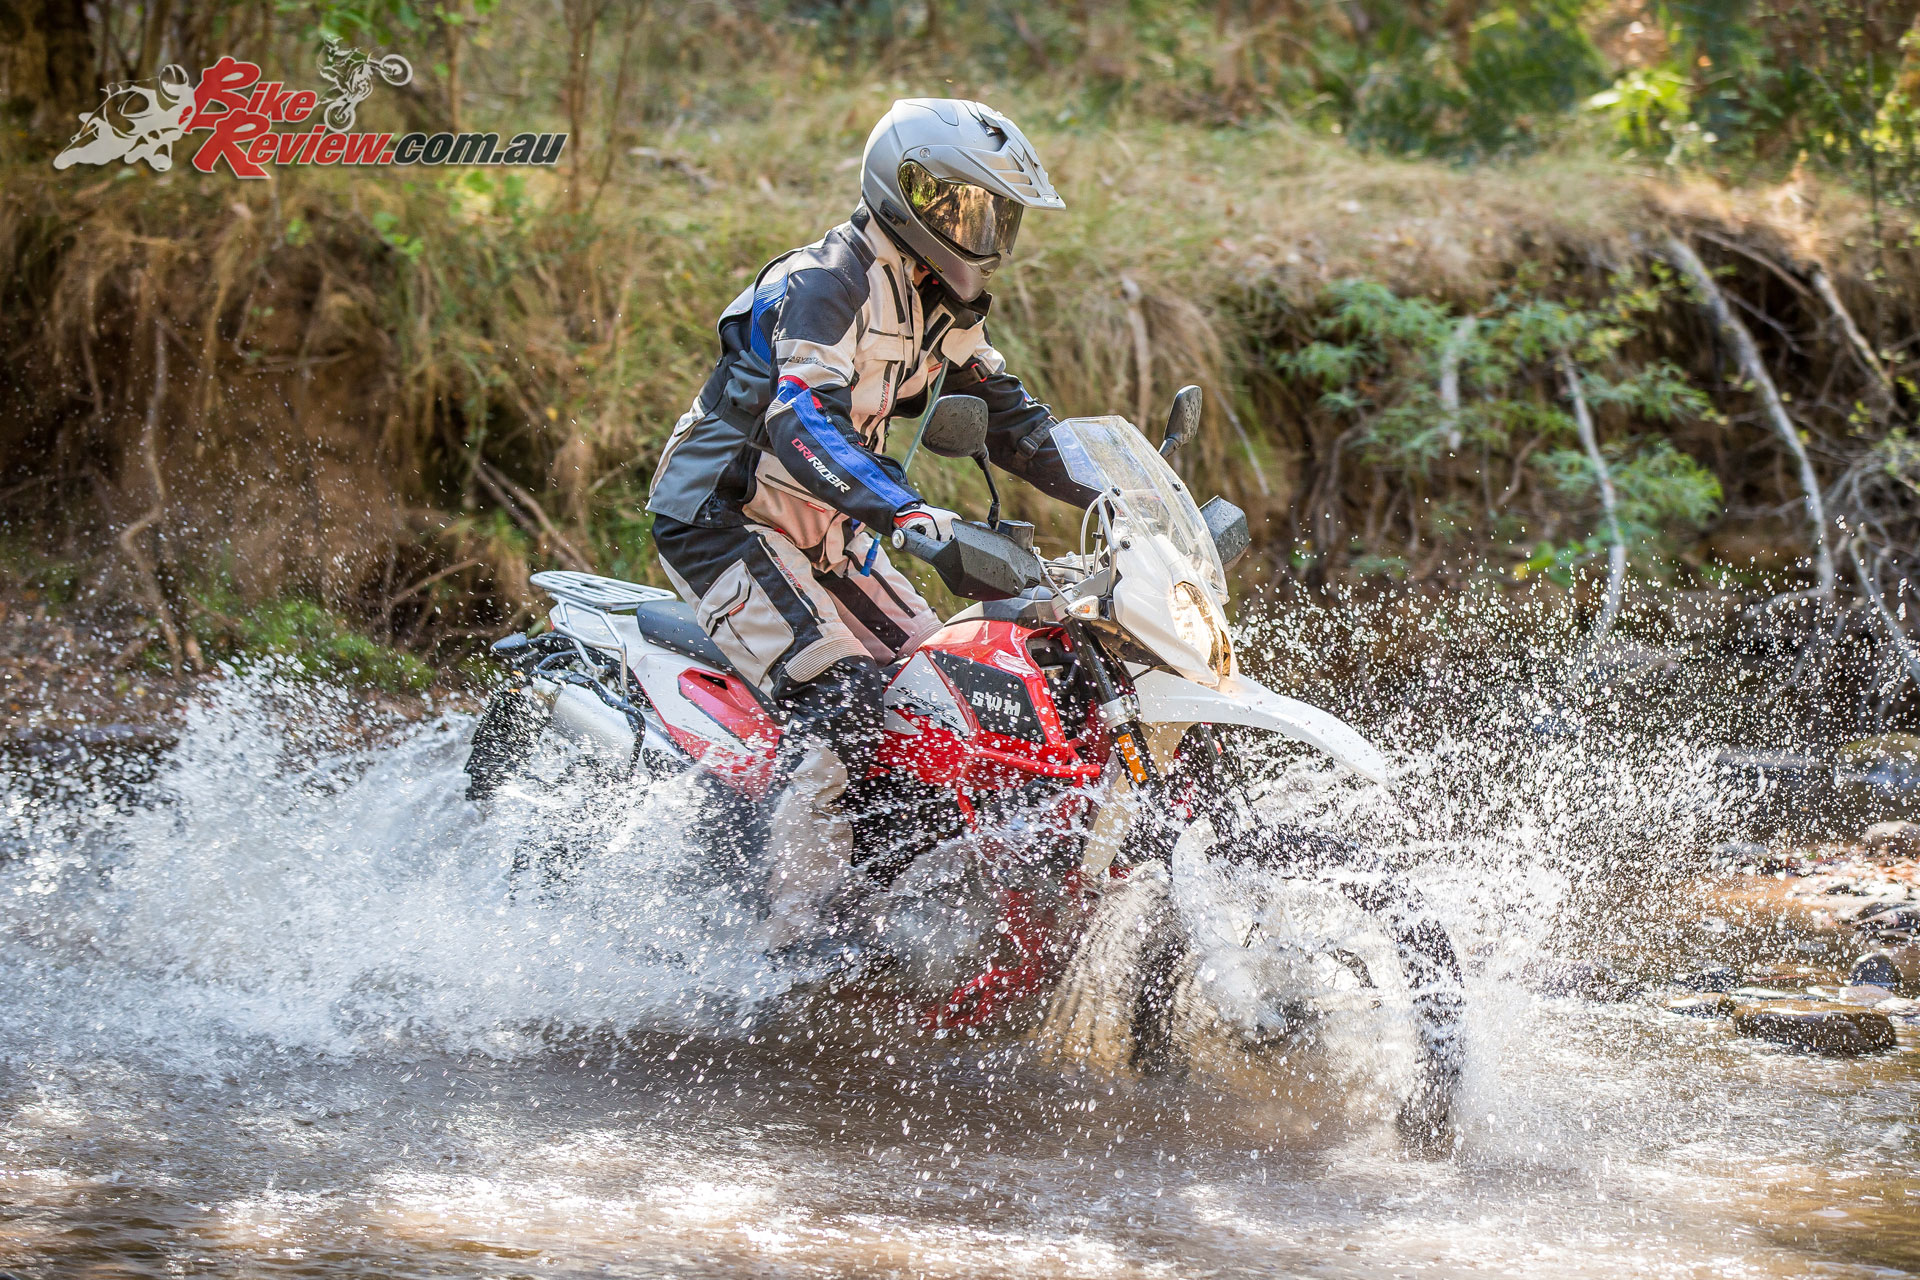 With it's enduro heritage the Superdual X is also happy tackling the toughest challenges